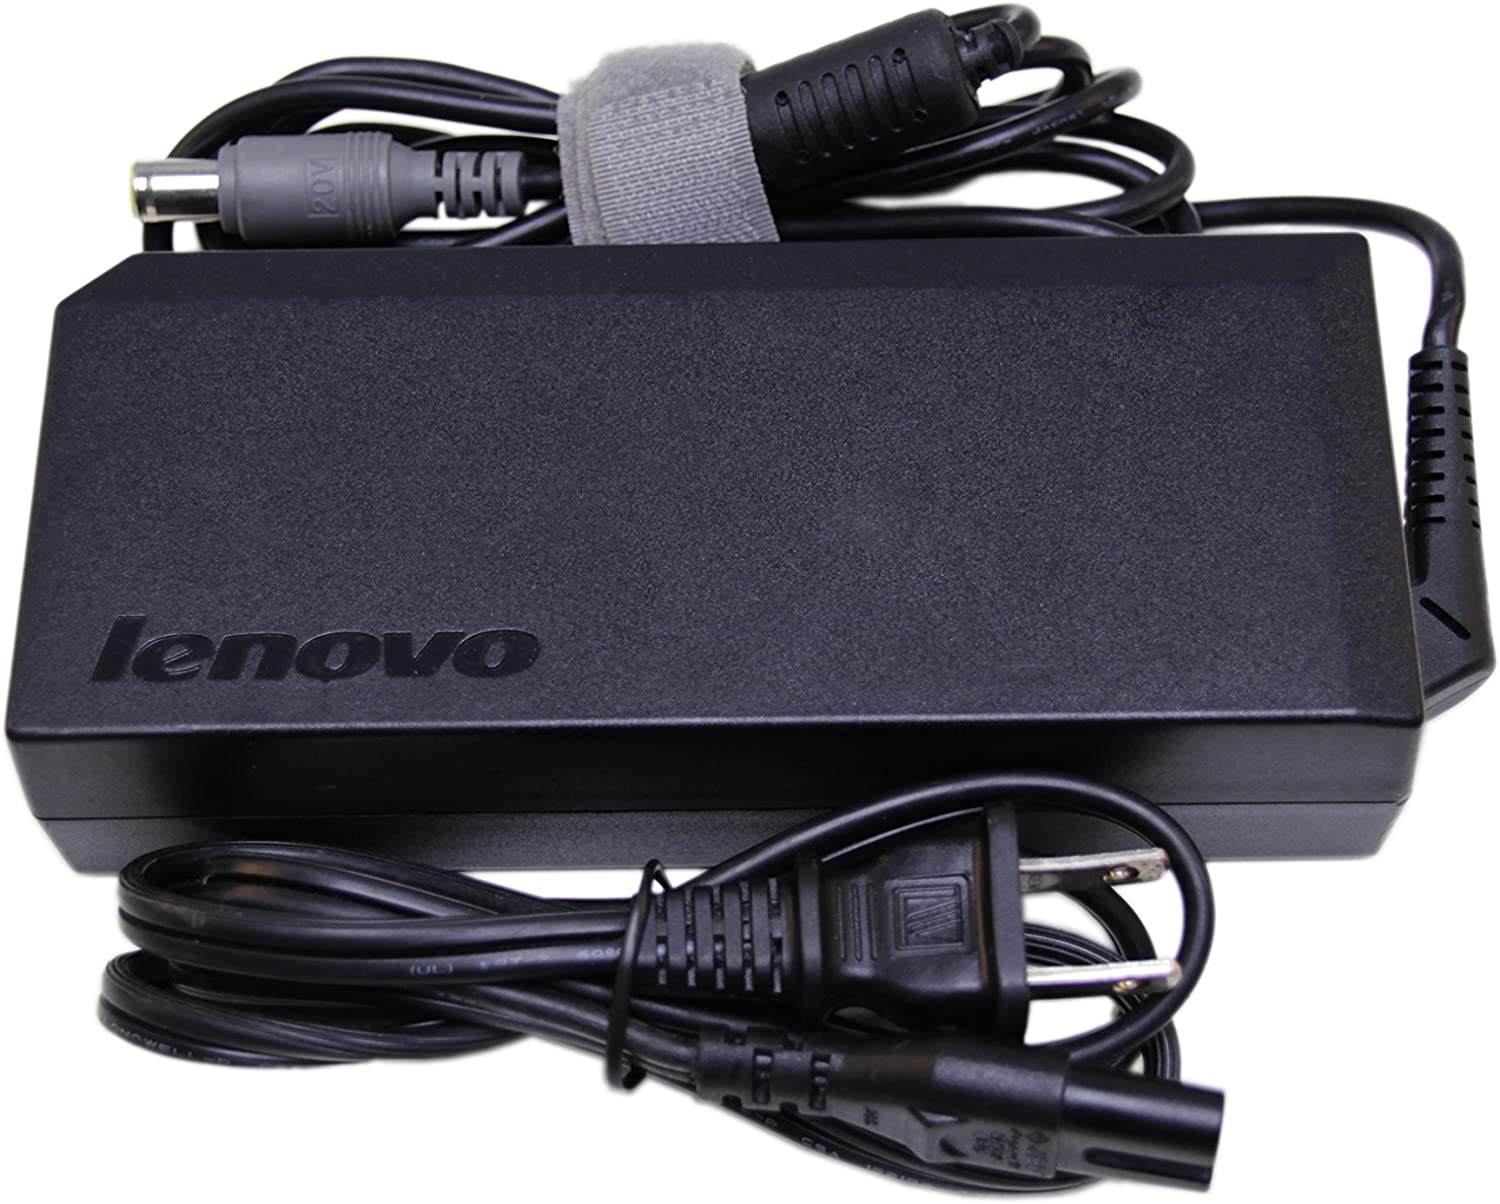 Thinkpad Lenovo 135W Laptop Charger AC Adapter Power Cord for Thinkpad T400s T410 T410i T410s T410si T420 T420s T430 T430s T510 T510i T520 T530 W500 W510